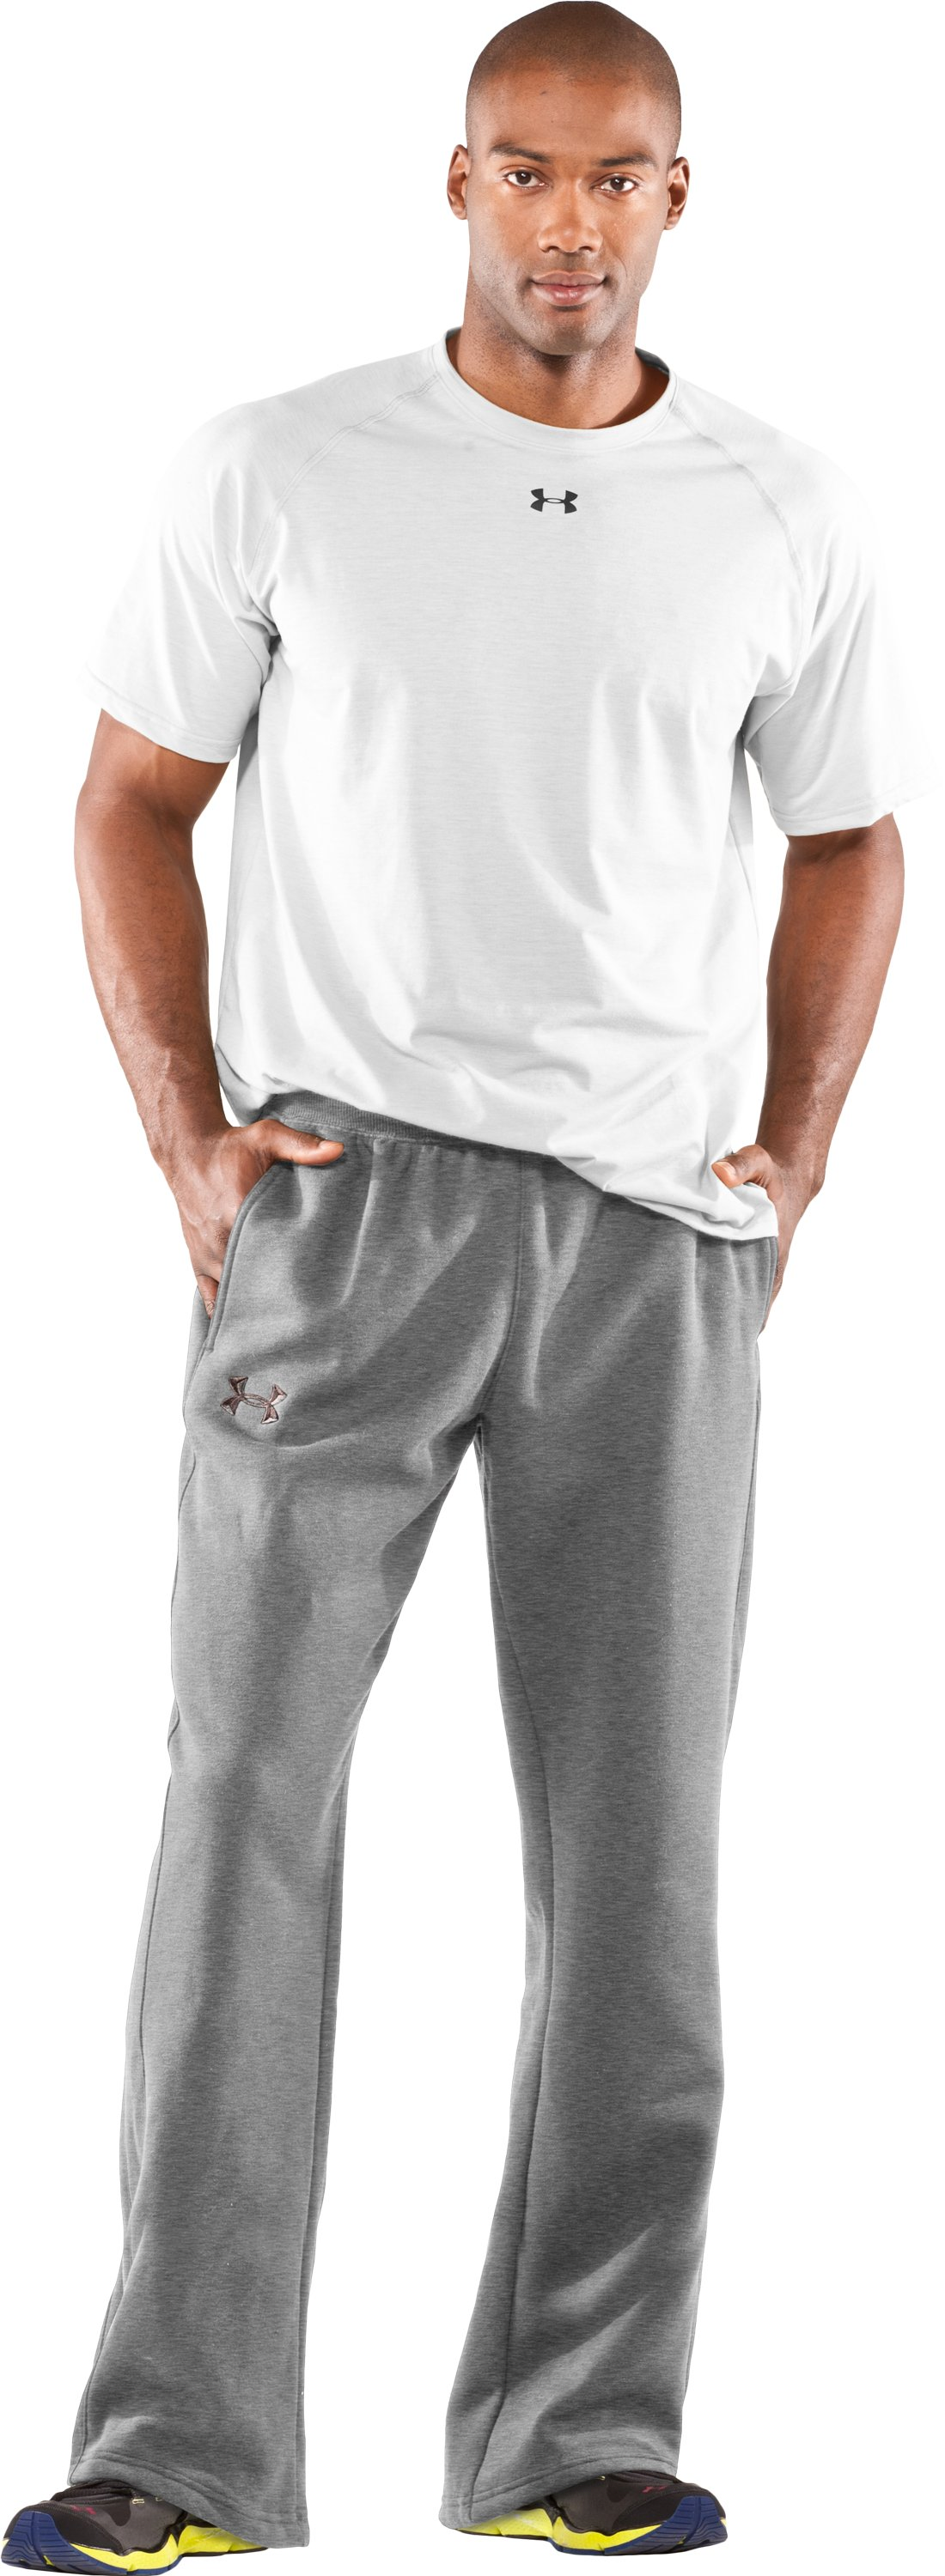 Men's Team Charged Cotton® Storm Pants, True Gray Heather, Front